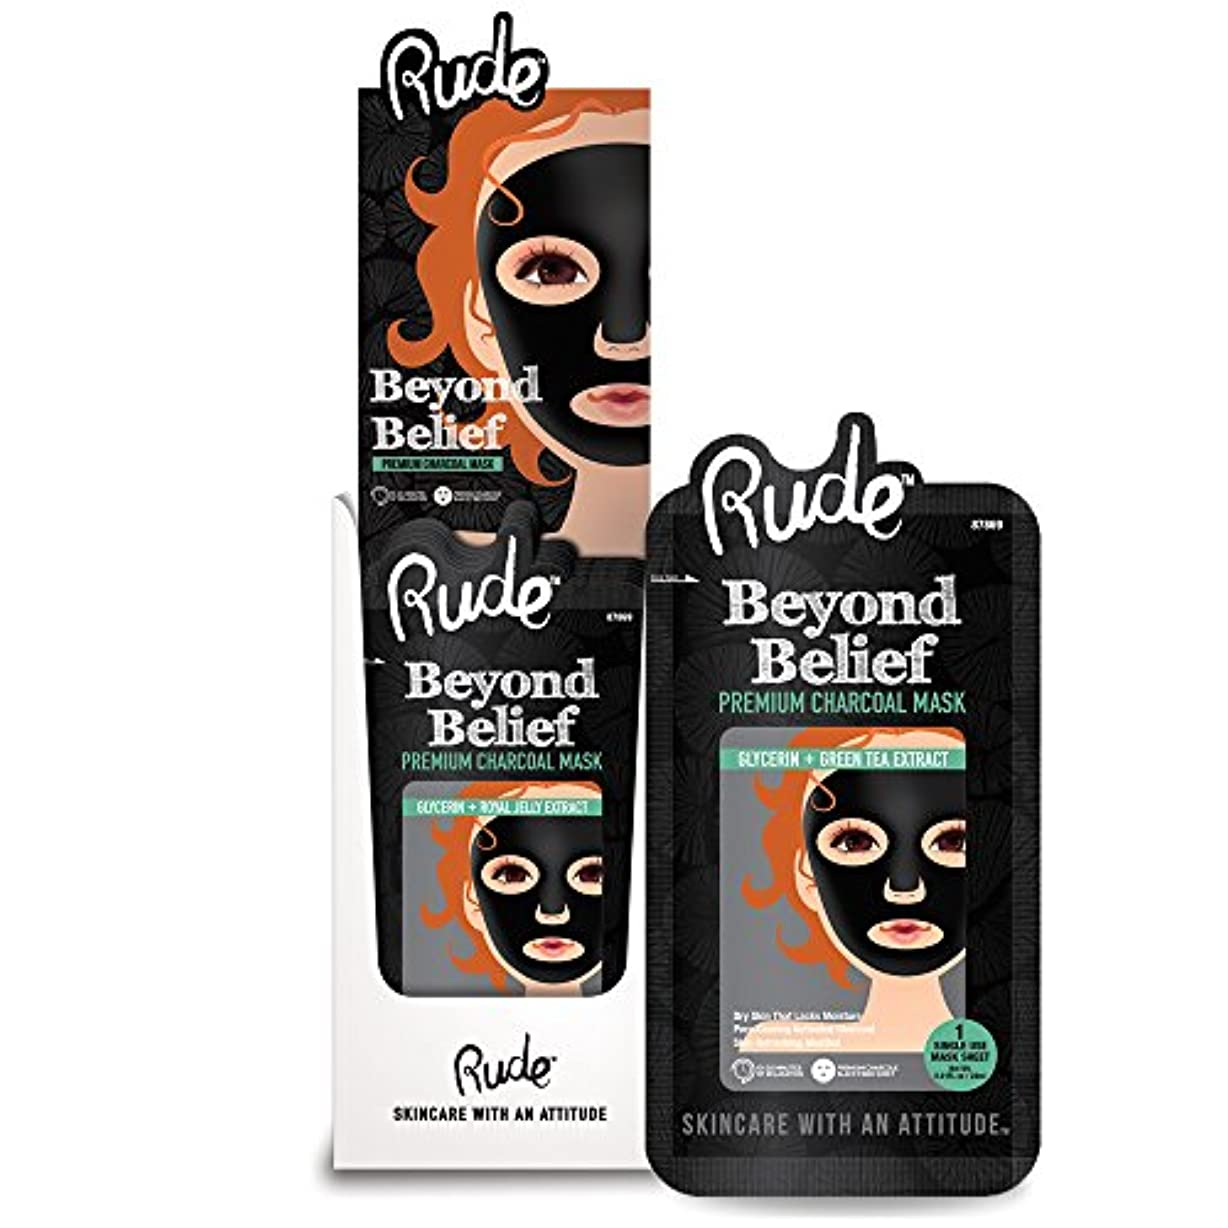 進むガイド現実的RUDE Beyond Belief Purifying Charcoal Mask Display Set, 36 Pieces (並行輸入品)